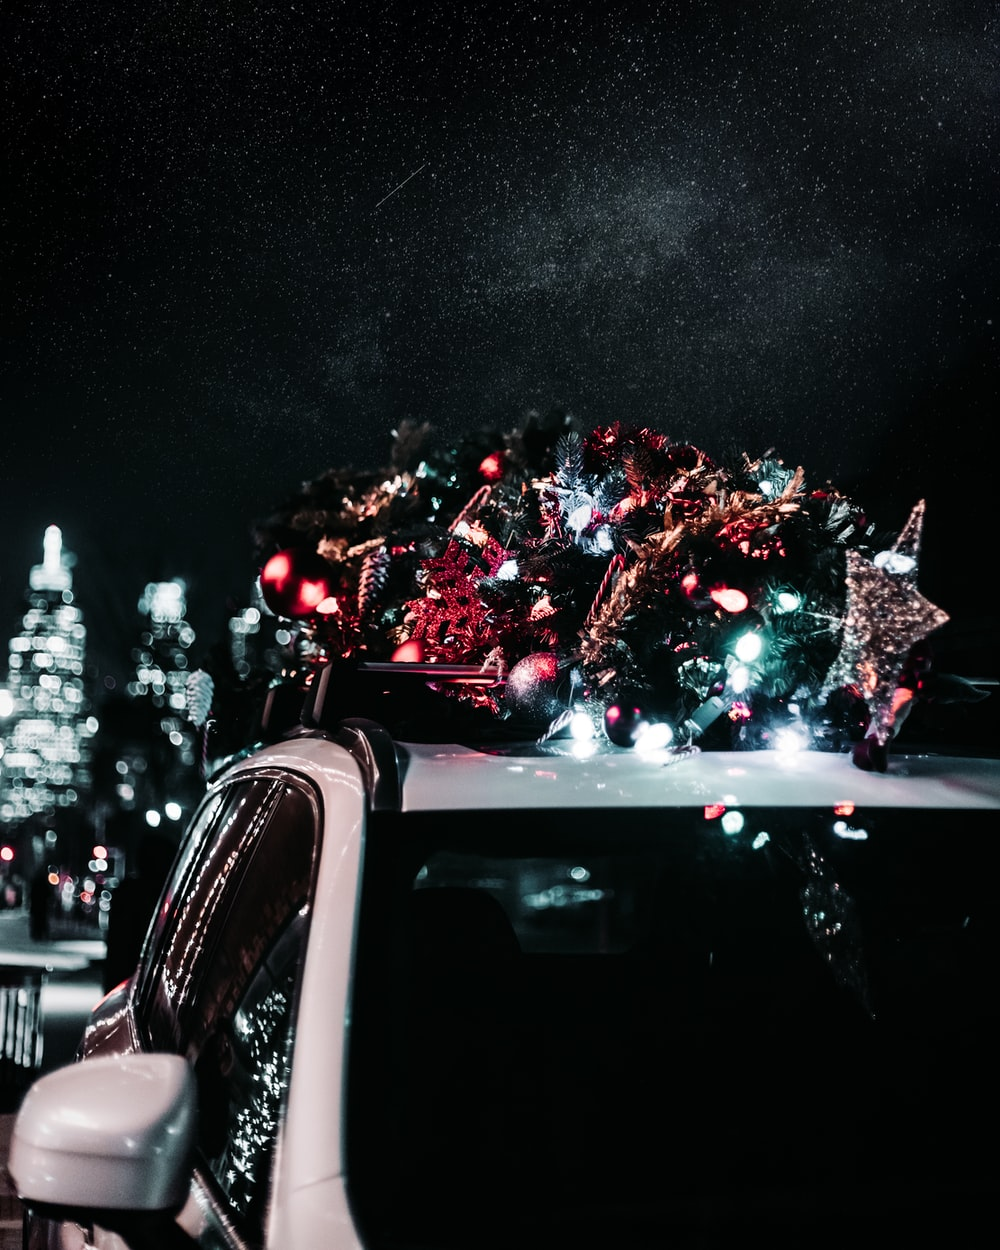 Car Christmas Tree.Christmas Tree On Car Pictures Download Free Images On